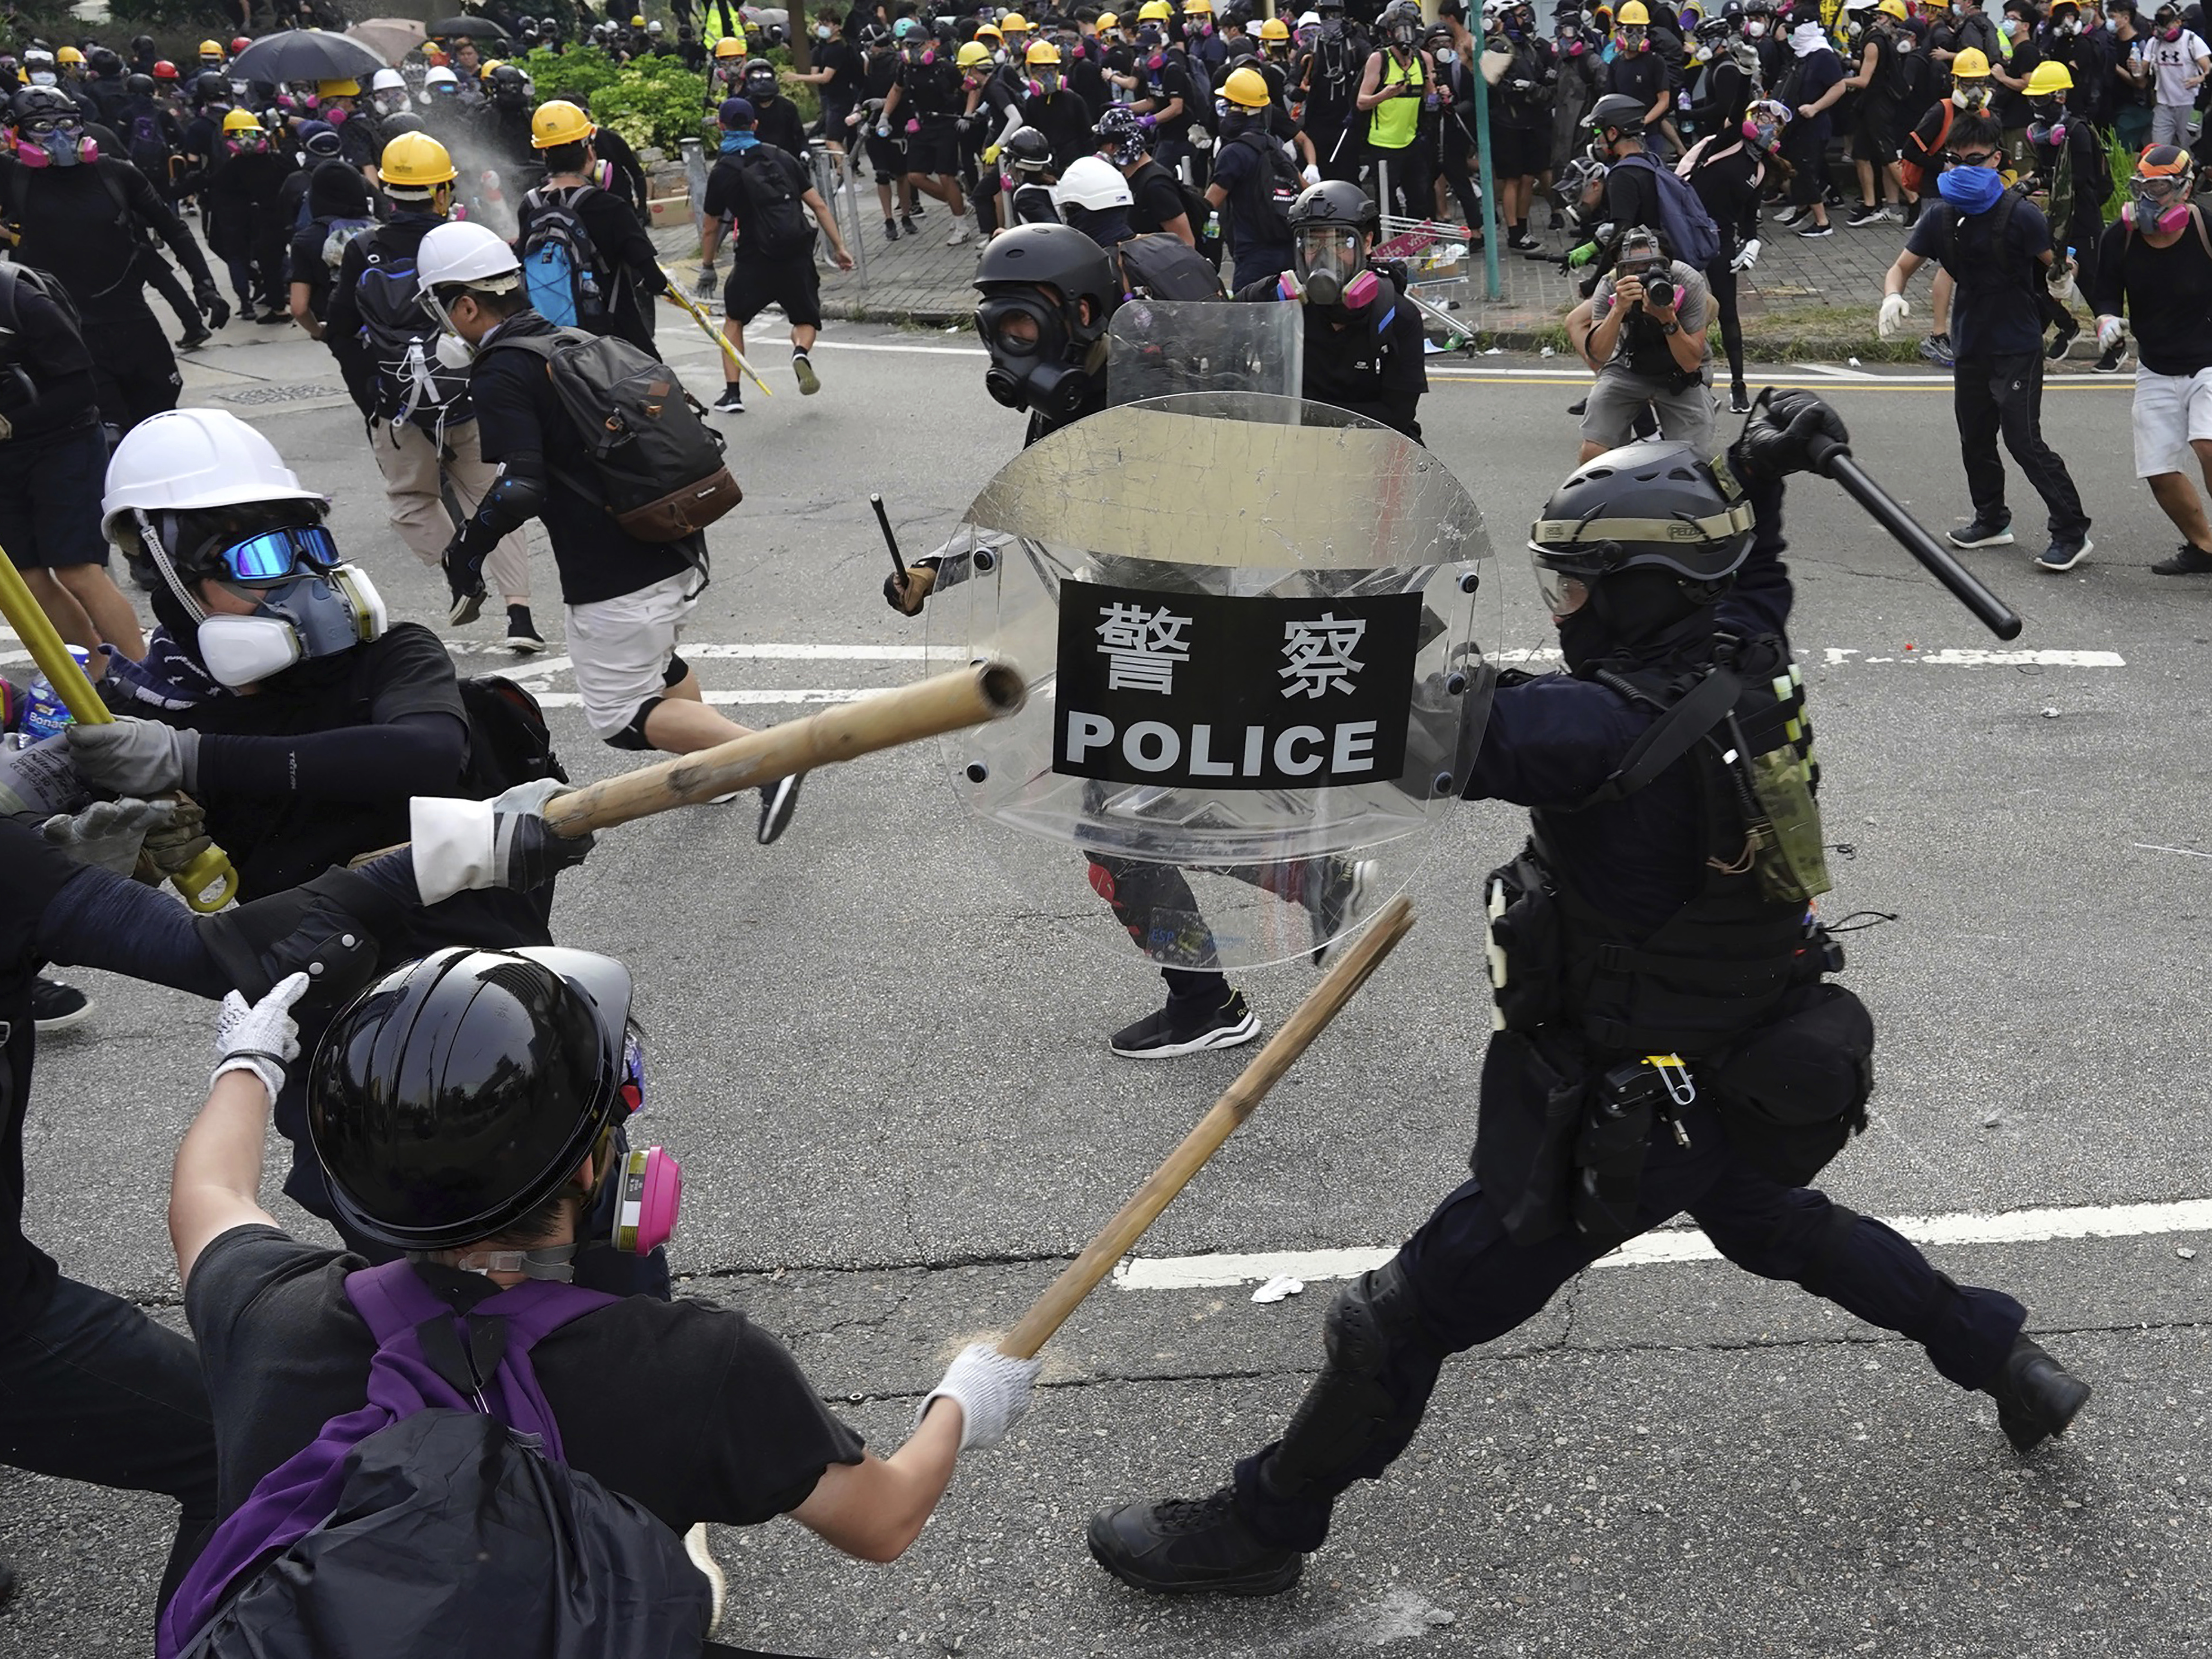 Violence Returns To Hong Kong As Police Fire Tear Gas And Protesters Fight Back